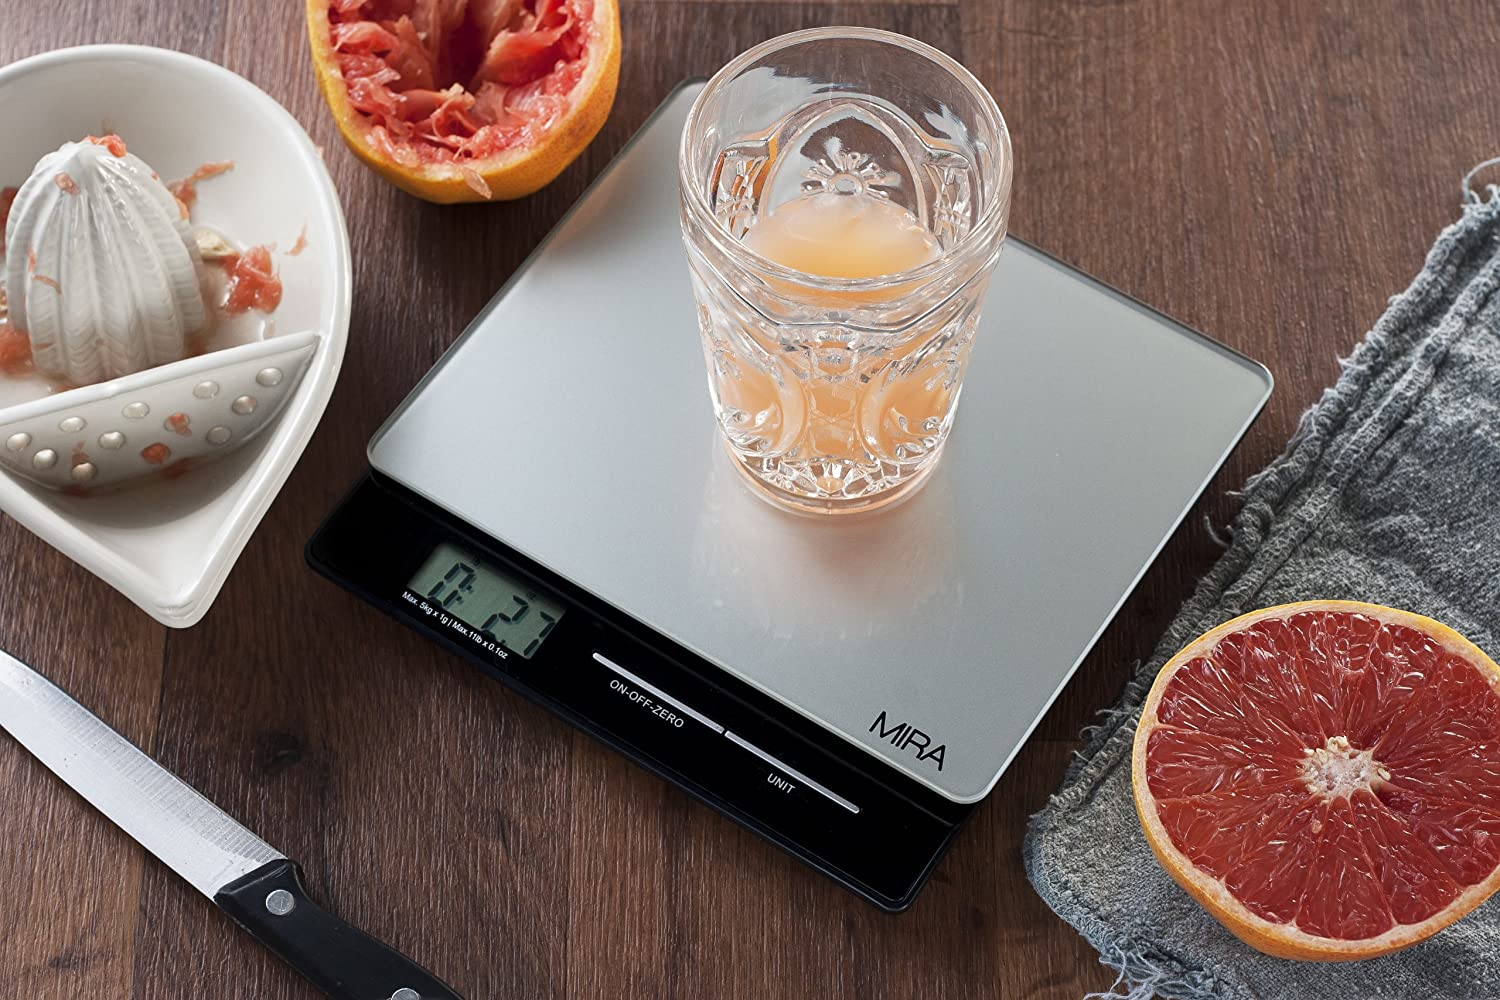 Save 51% On MIRA Digital Kitchen Scale - Food Scale for $22.95 91HybsaZiAL._SL1500_